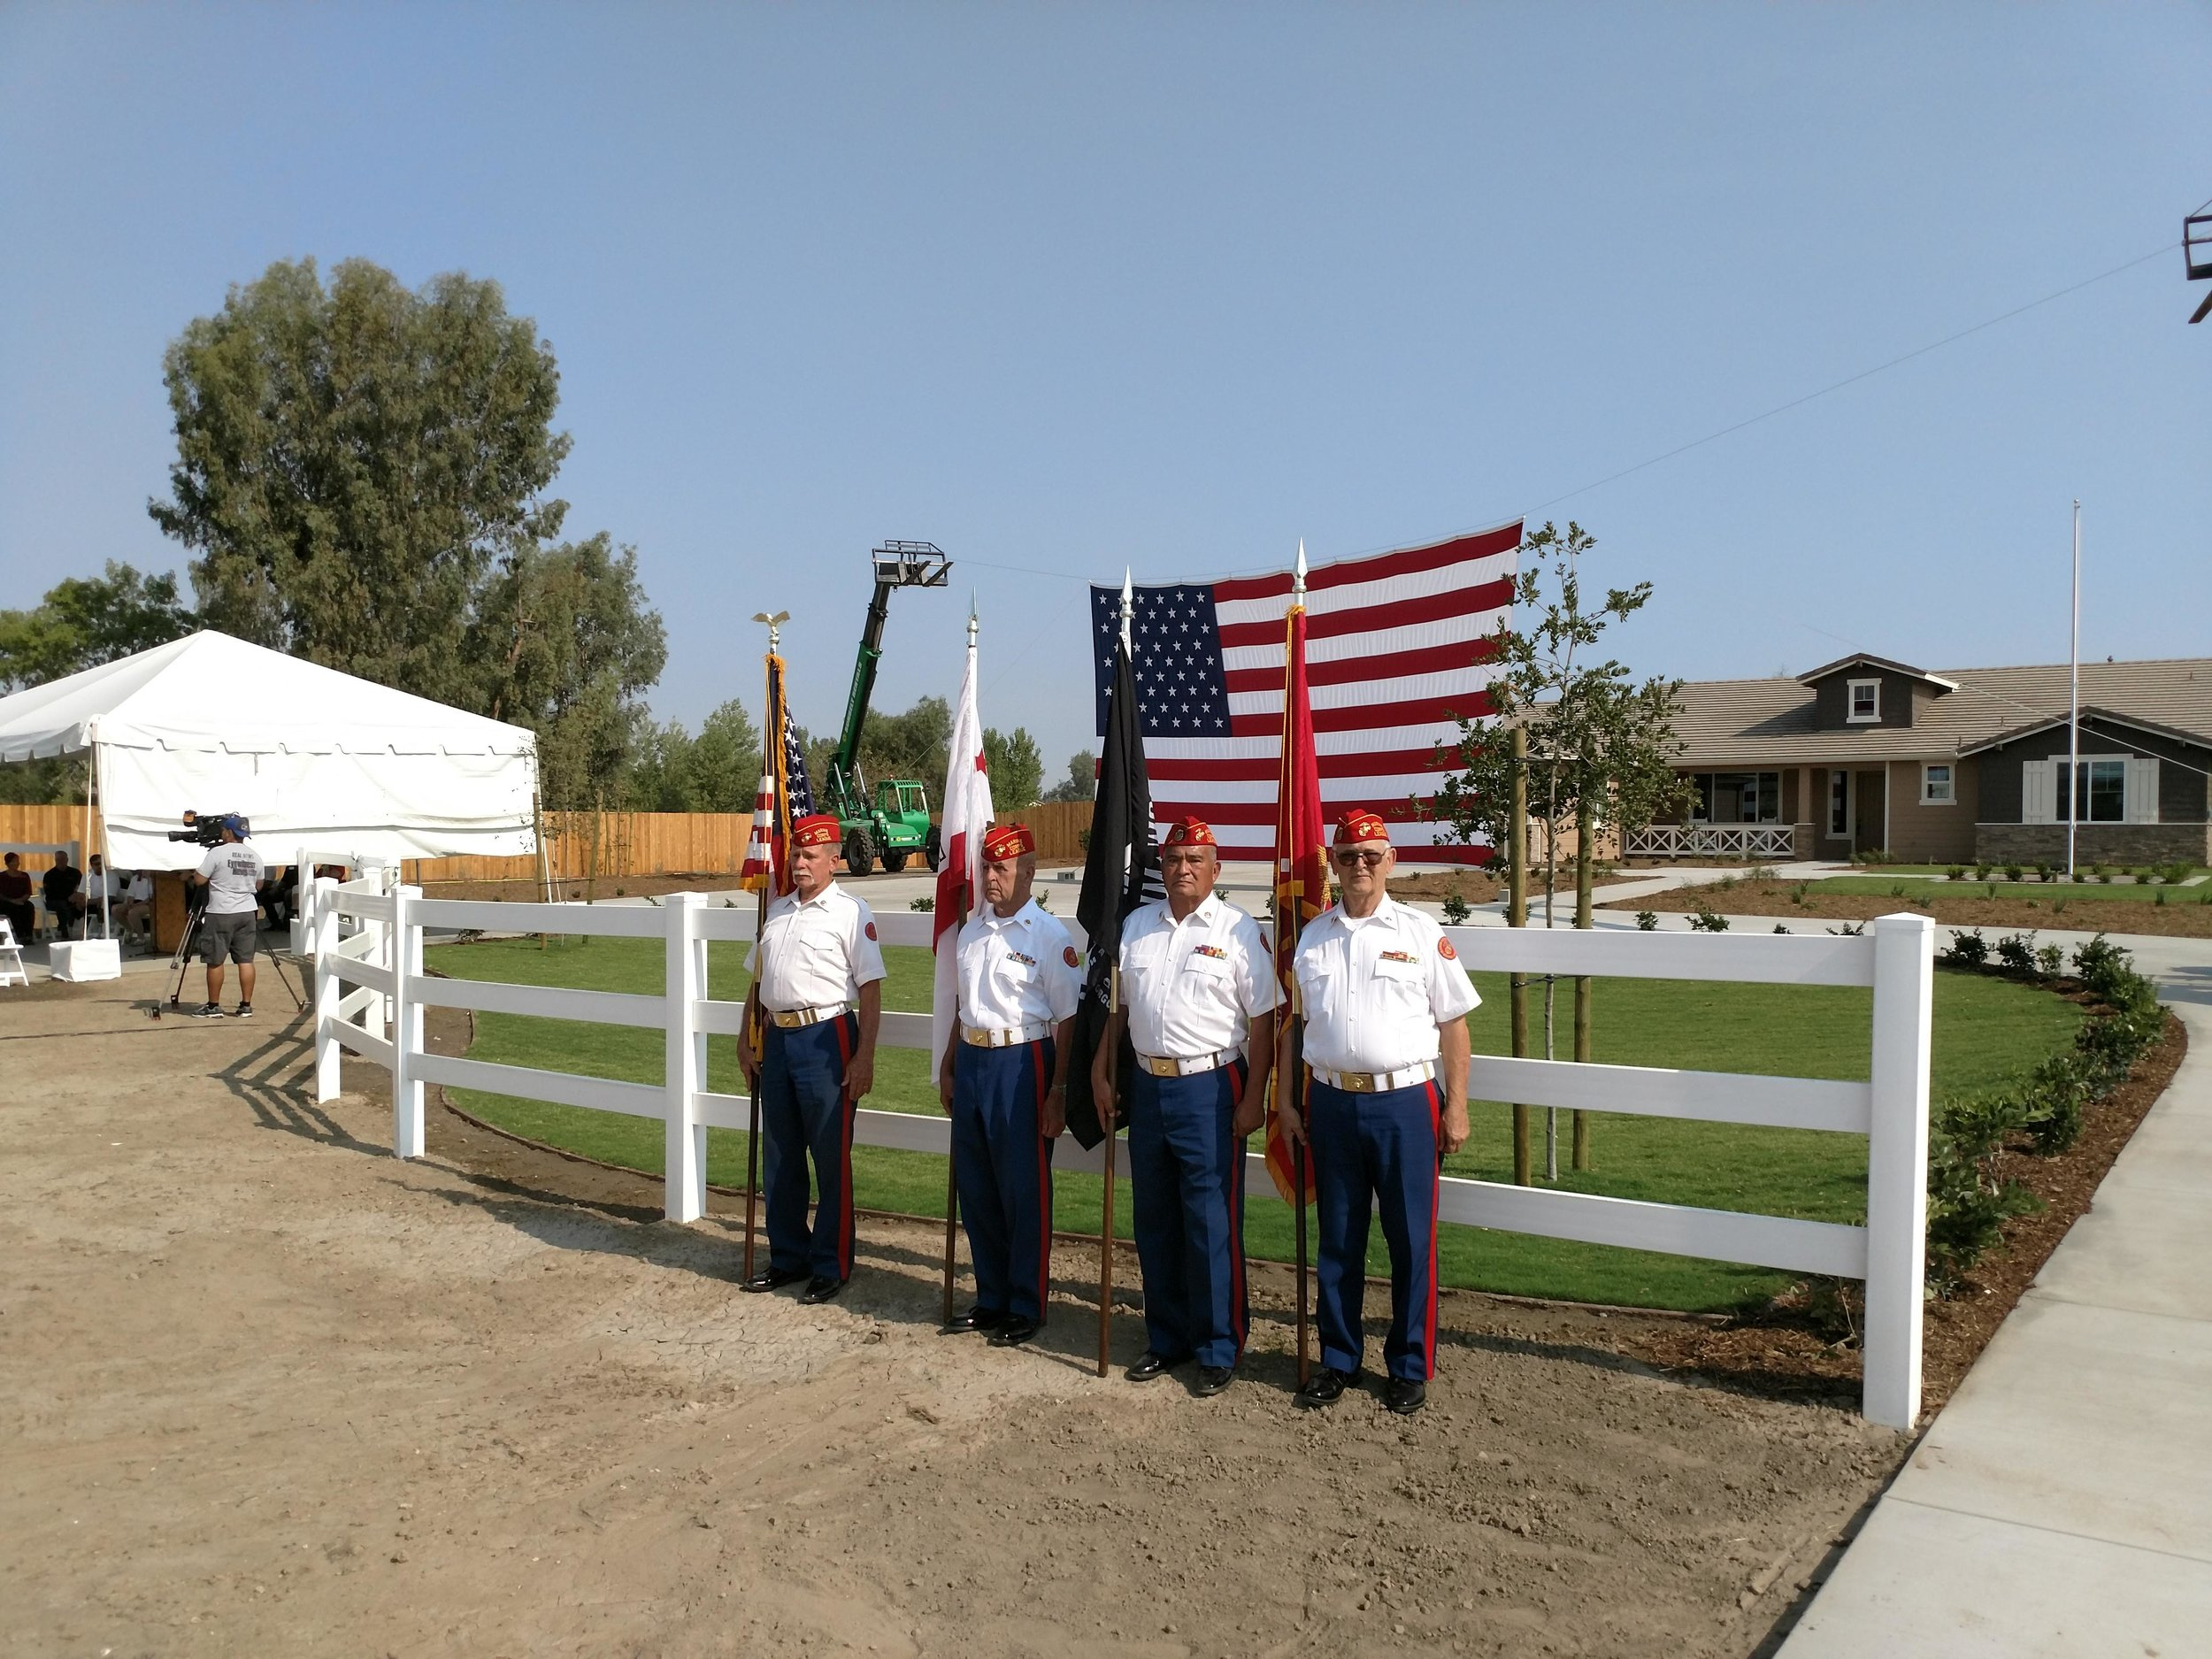 """July 26, 2018   Color Guard at the dedication of a """"smart"""" house built by the Gary Sinise Foundation for Marine Corporal Joshua Brubaker in Bakersfield.  Our Guard was personally invited by the Foundation. Participants are:  L/R: Larry Fischer, John Coley, Fausto Galvan and Ben Pfister."""